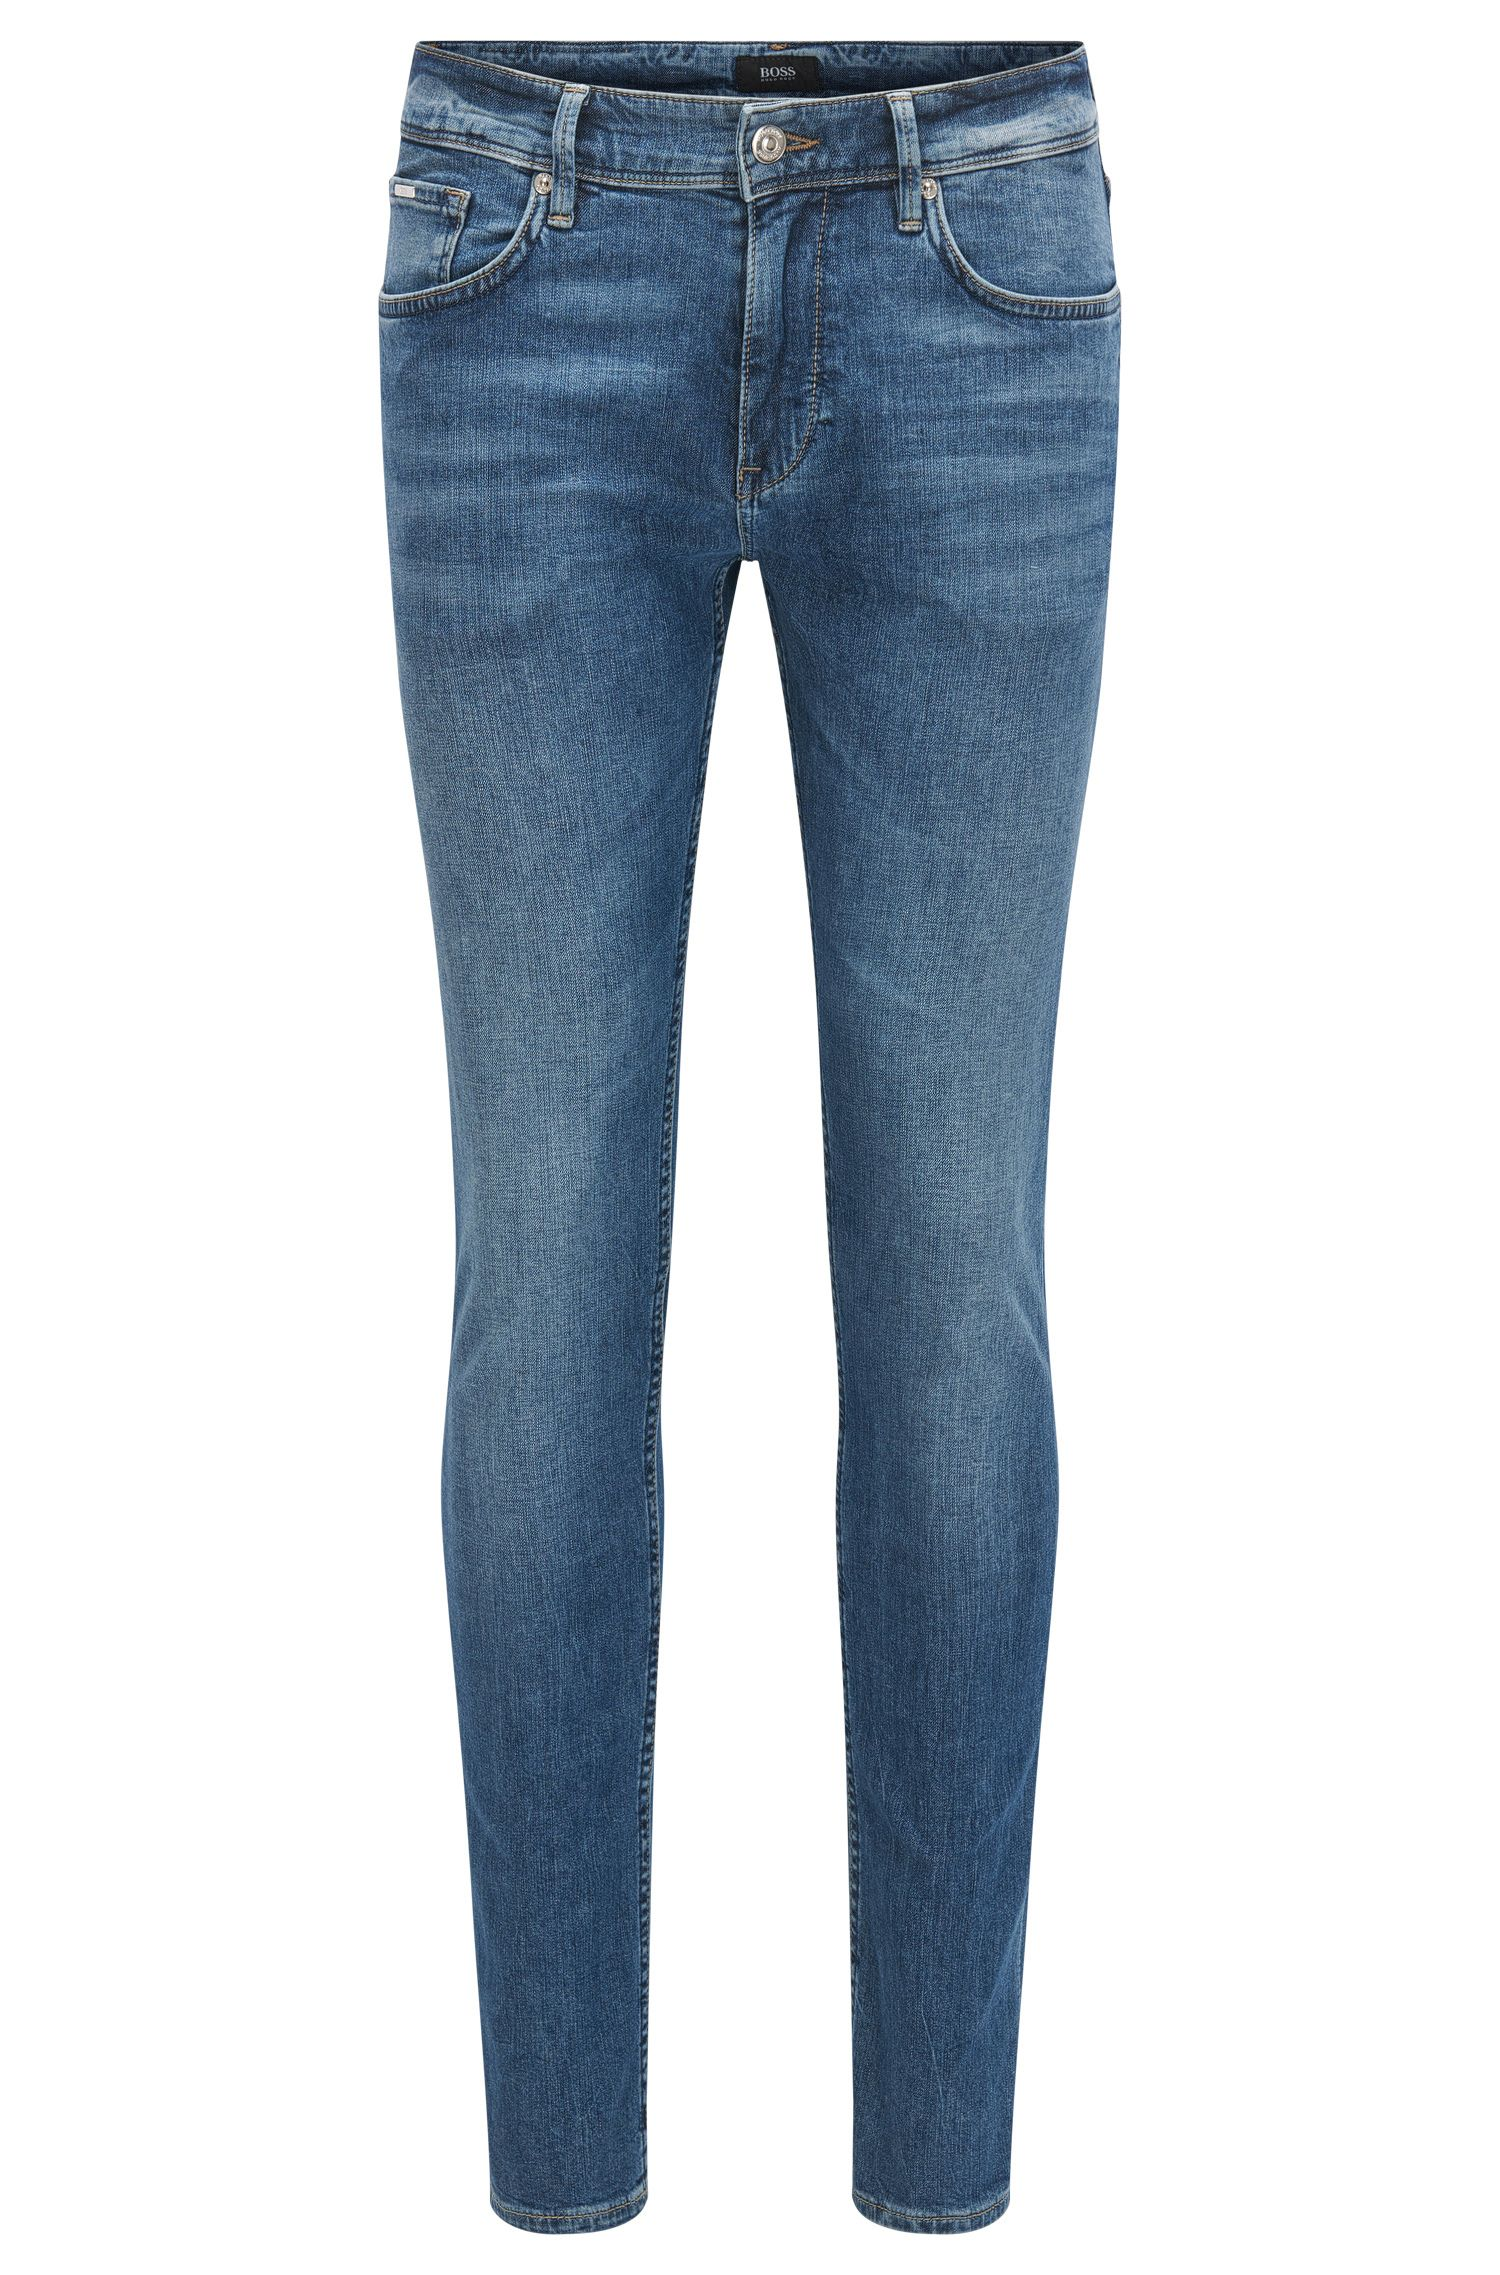 Slim-fit jeans in lightweight mid-washed denim